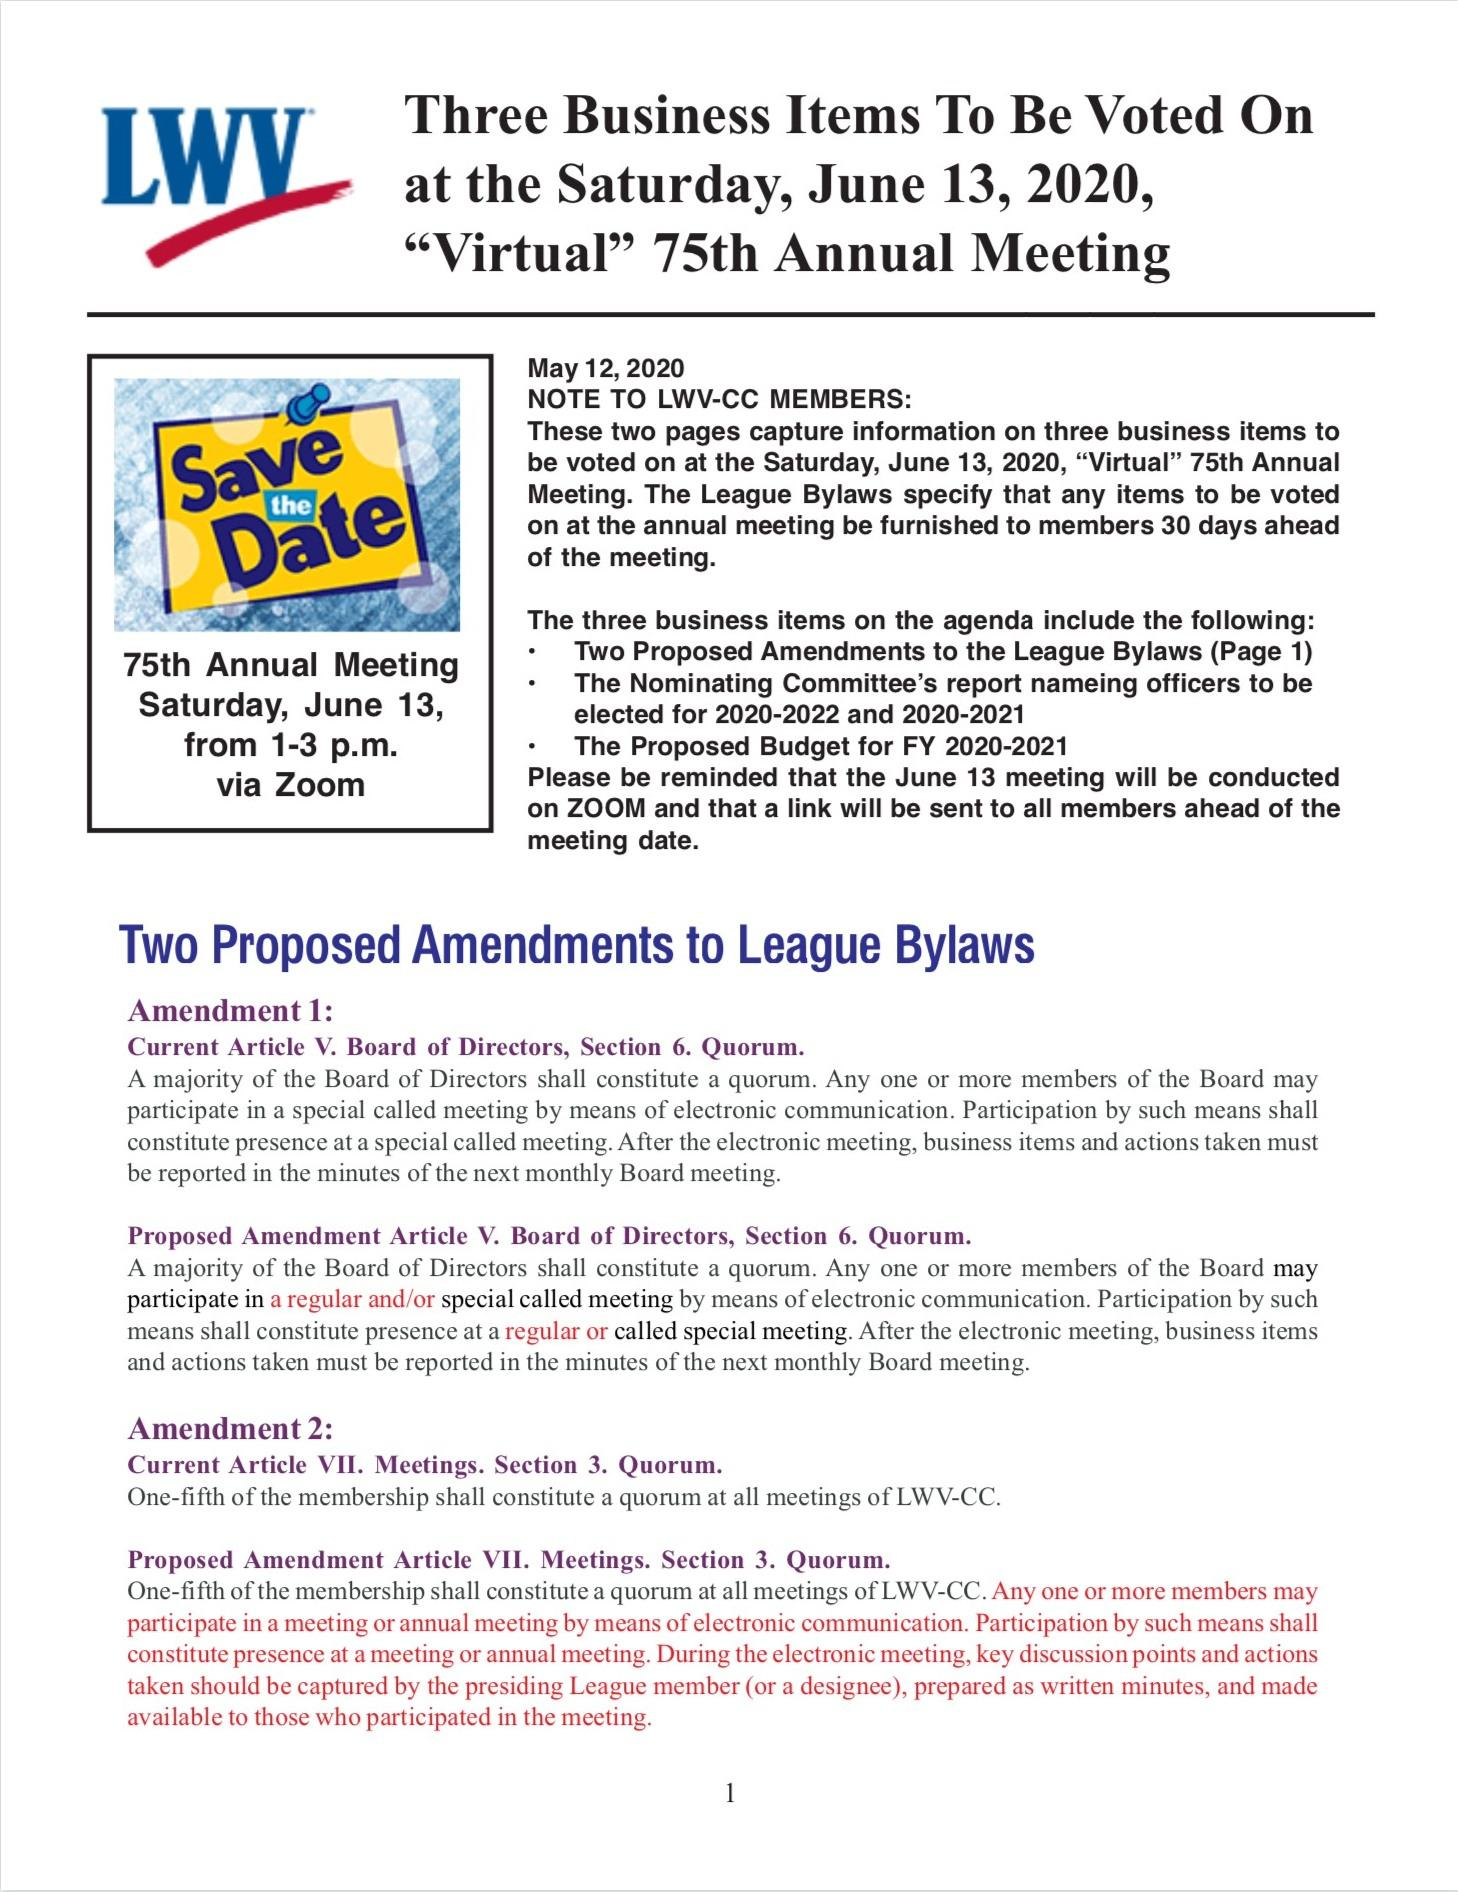 Annual Meeting Info page 1